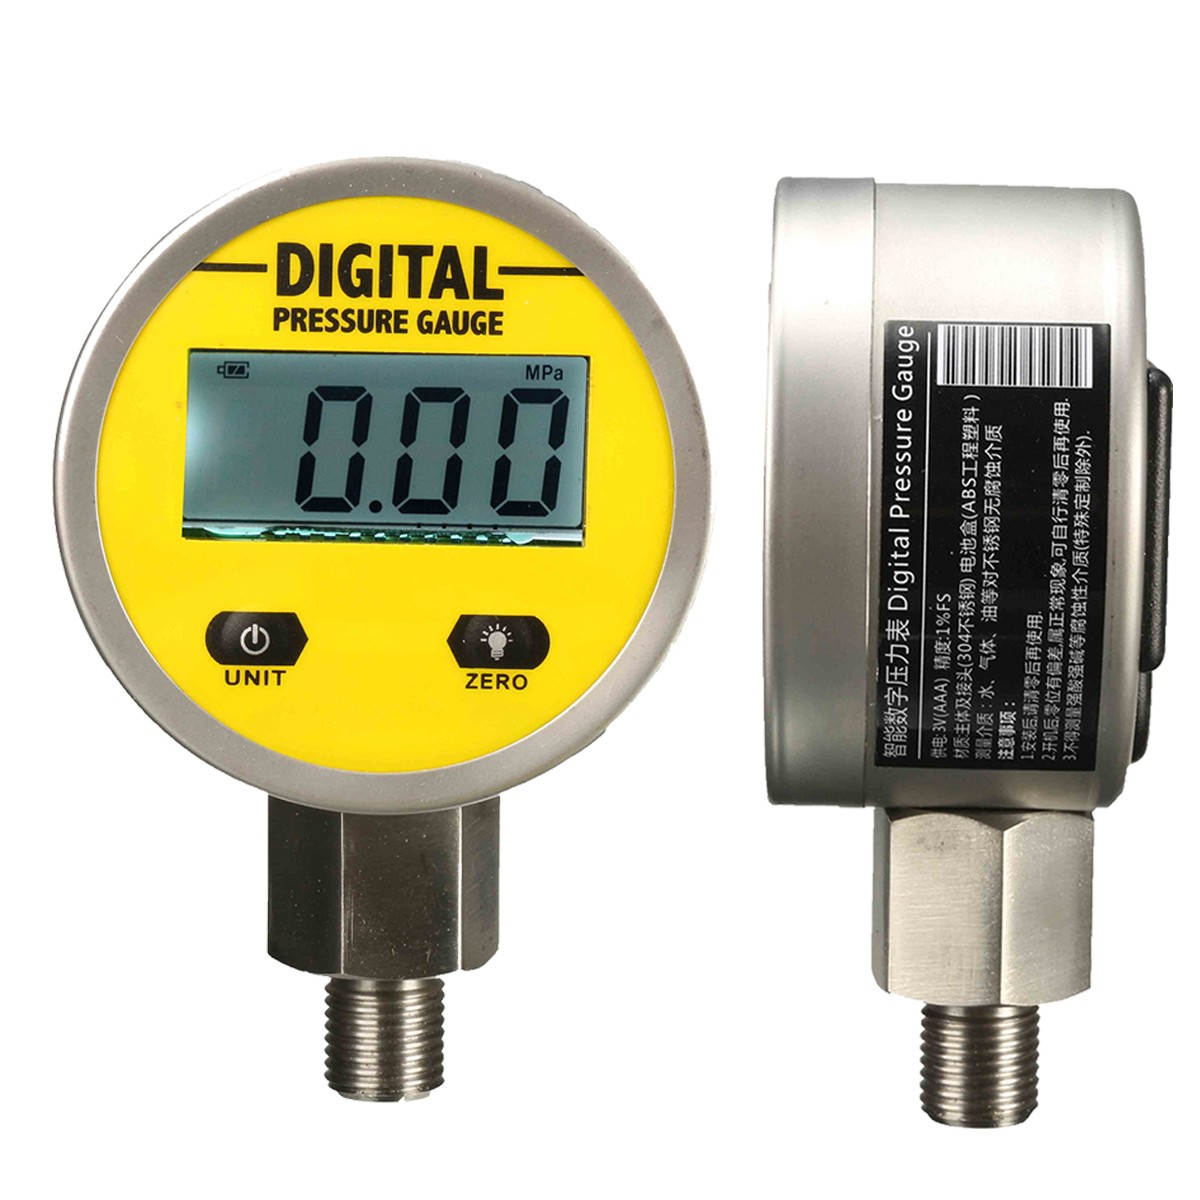 Digital Hydraulic Pressure Gauge 0-250BAR/25Mpa/3600PSI (G/NPT1/4) -Base Entry